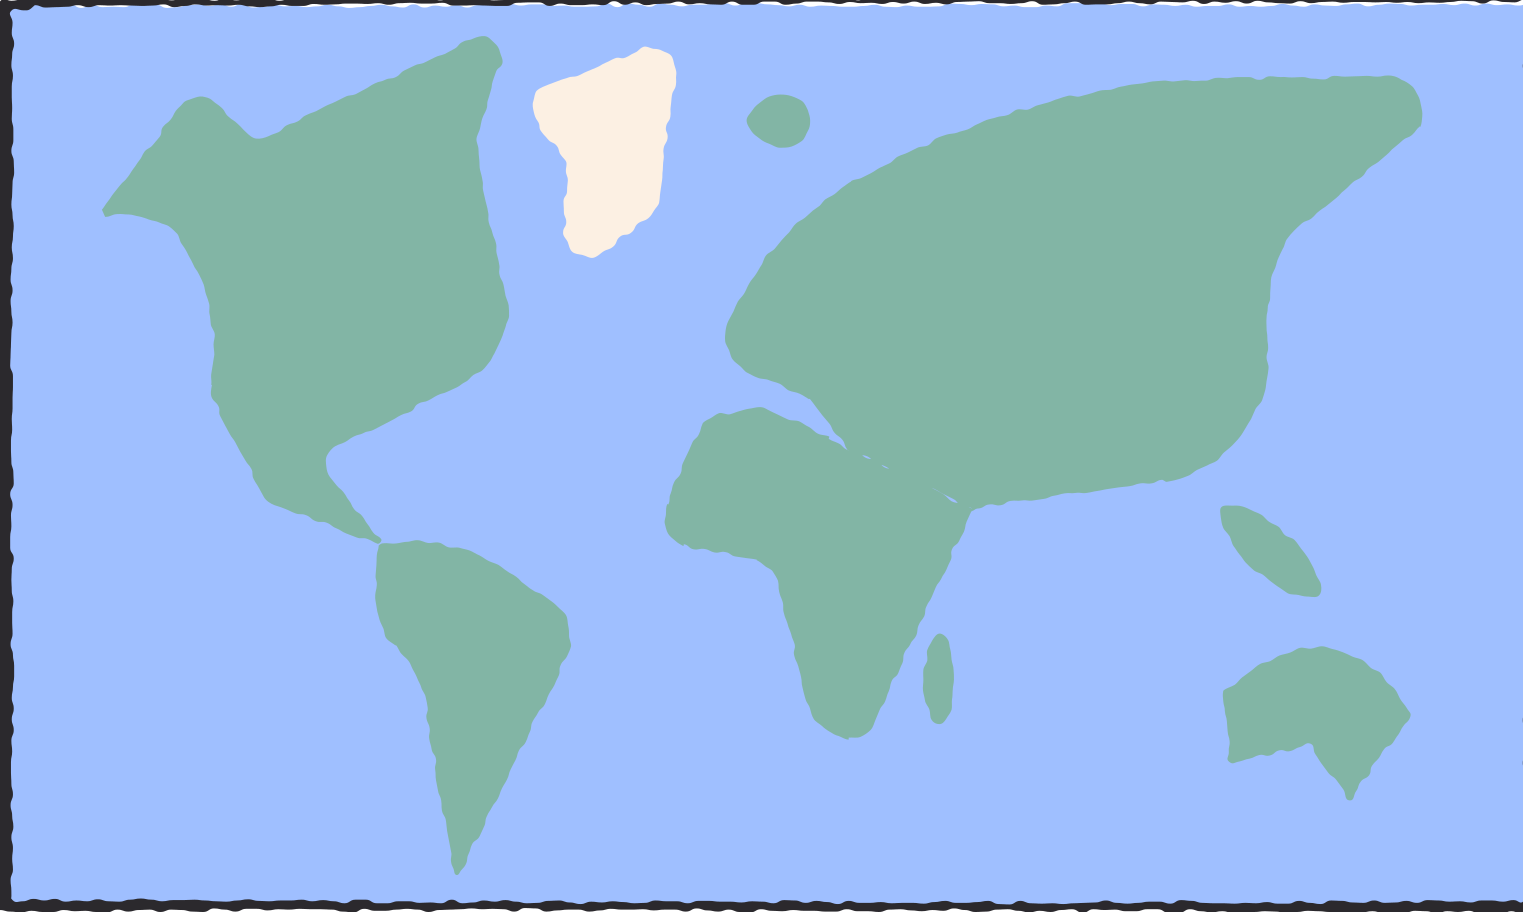 world map Clipart illustration in PNG, SVG